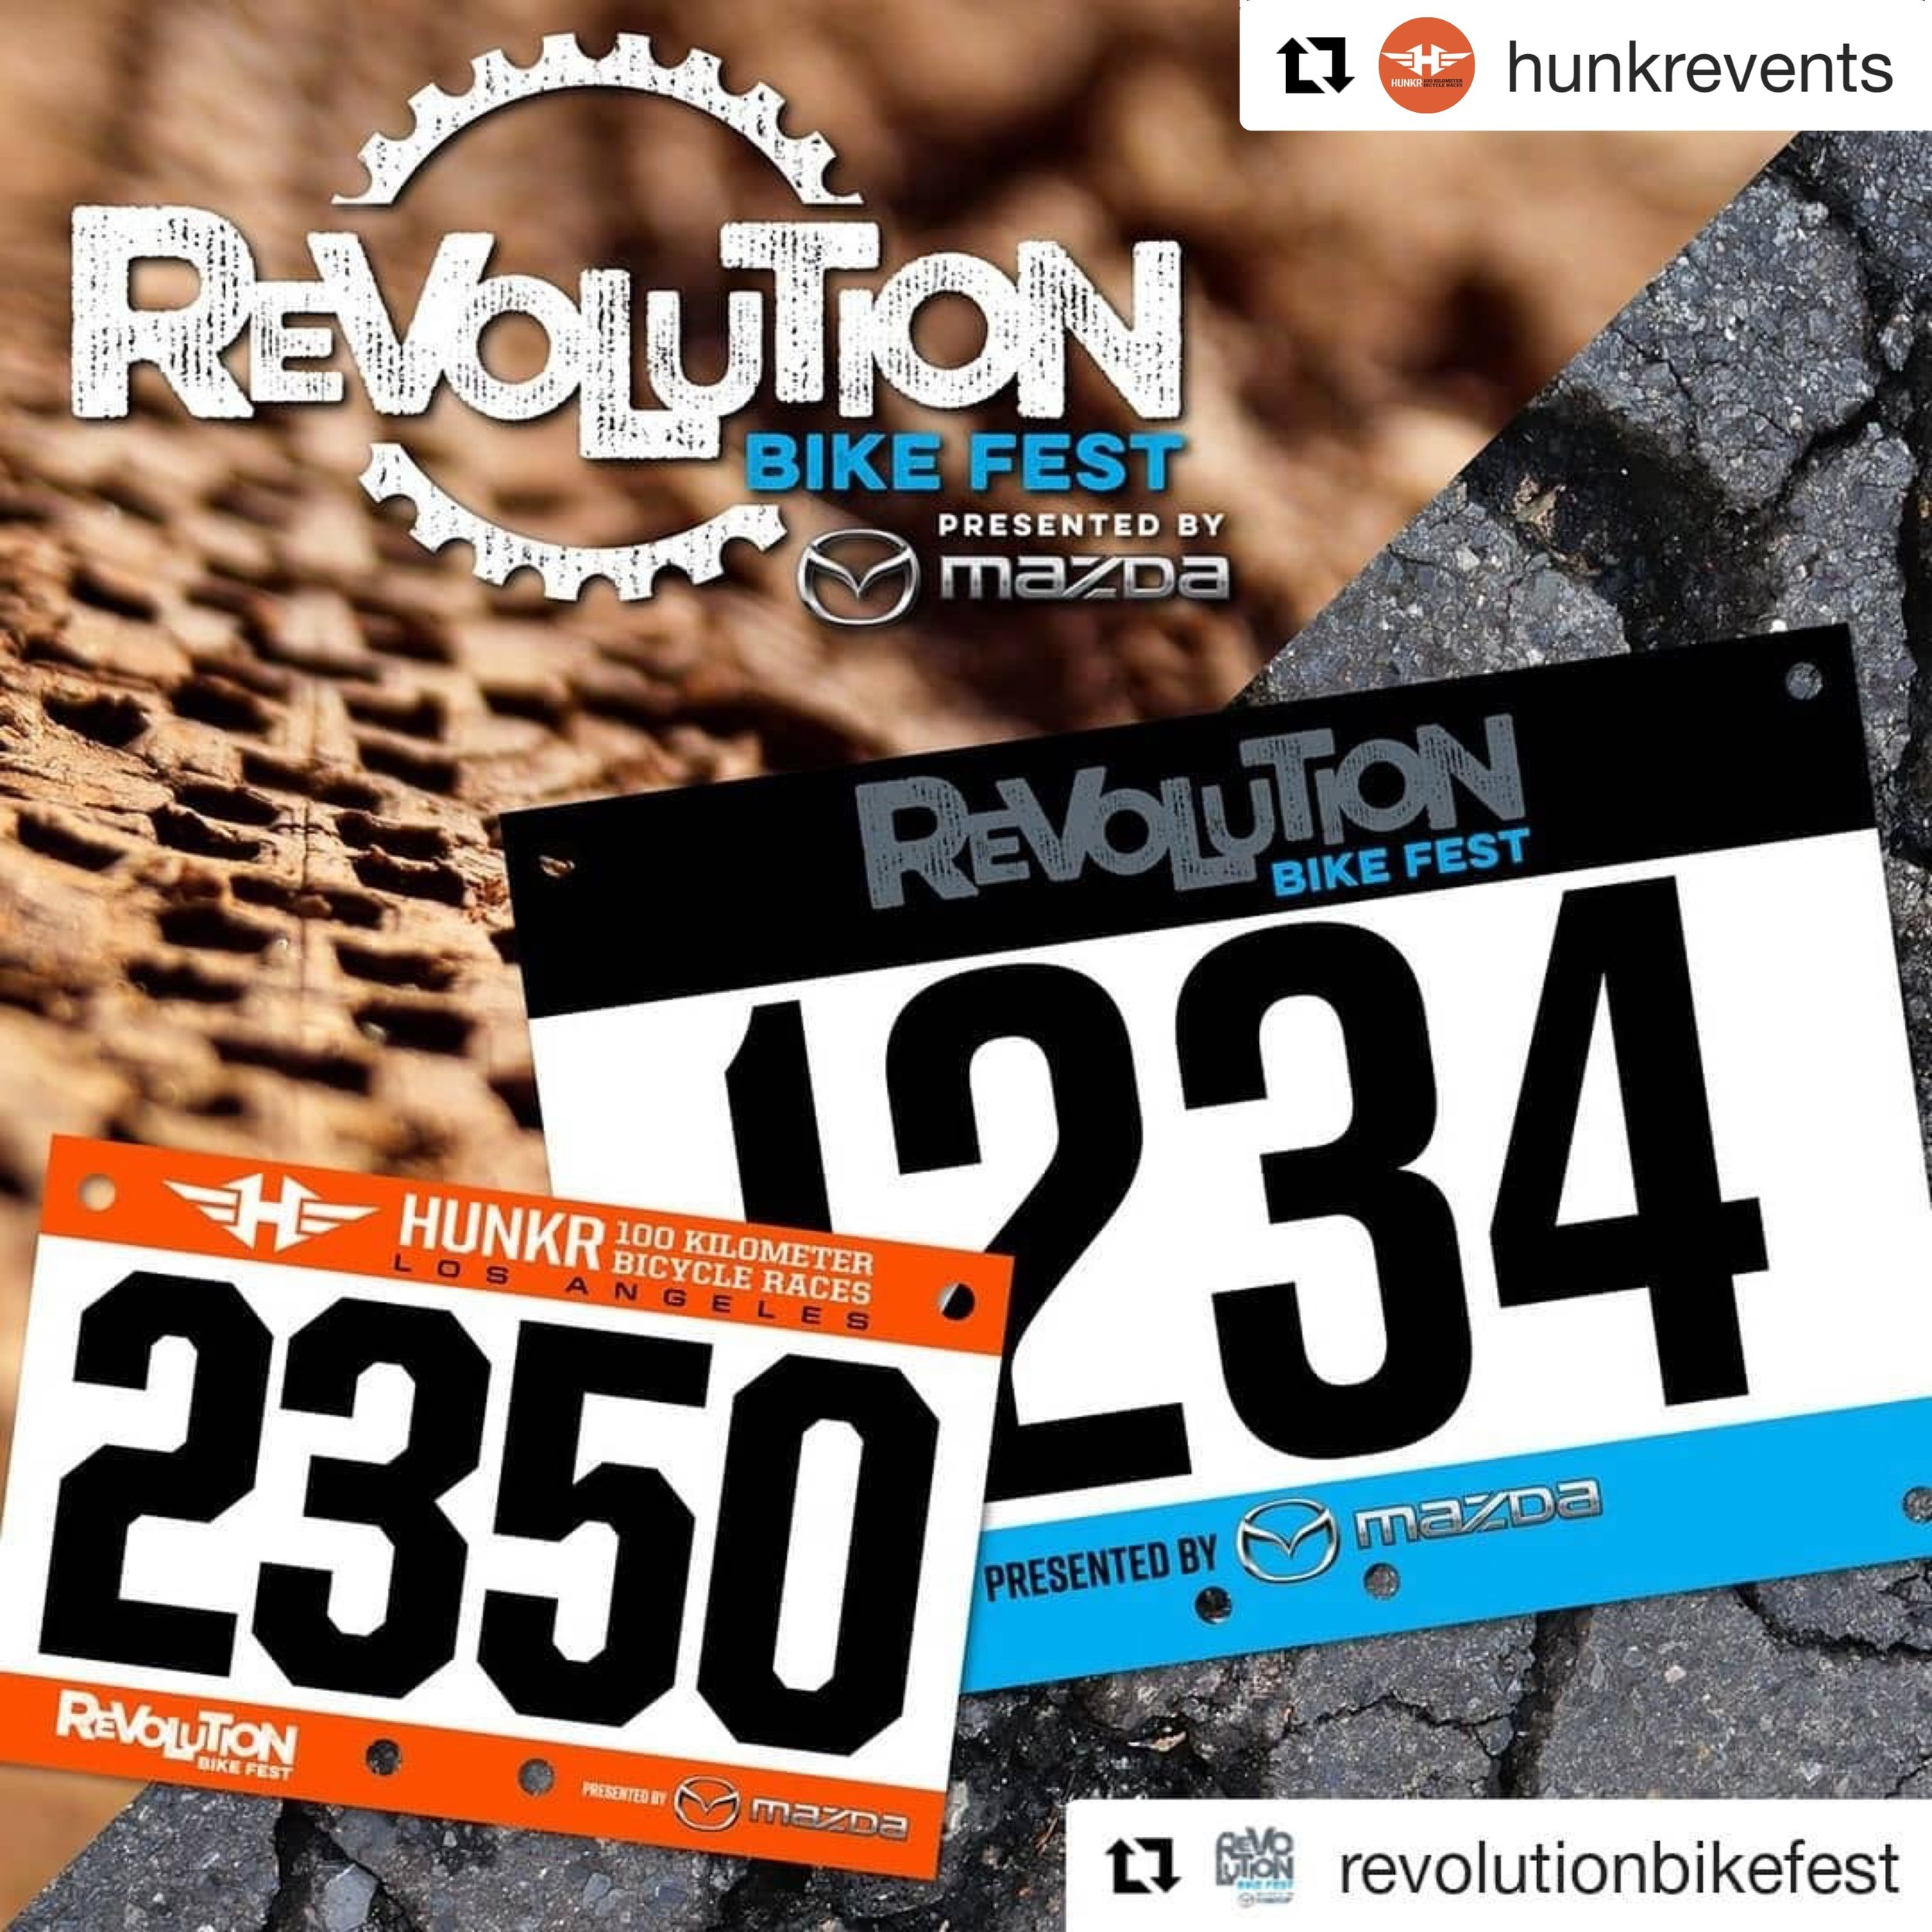 Come ride, race and hangout at Revolution Bike Fest, there's gravel and MTB rides plus other events going on all weekend.